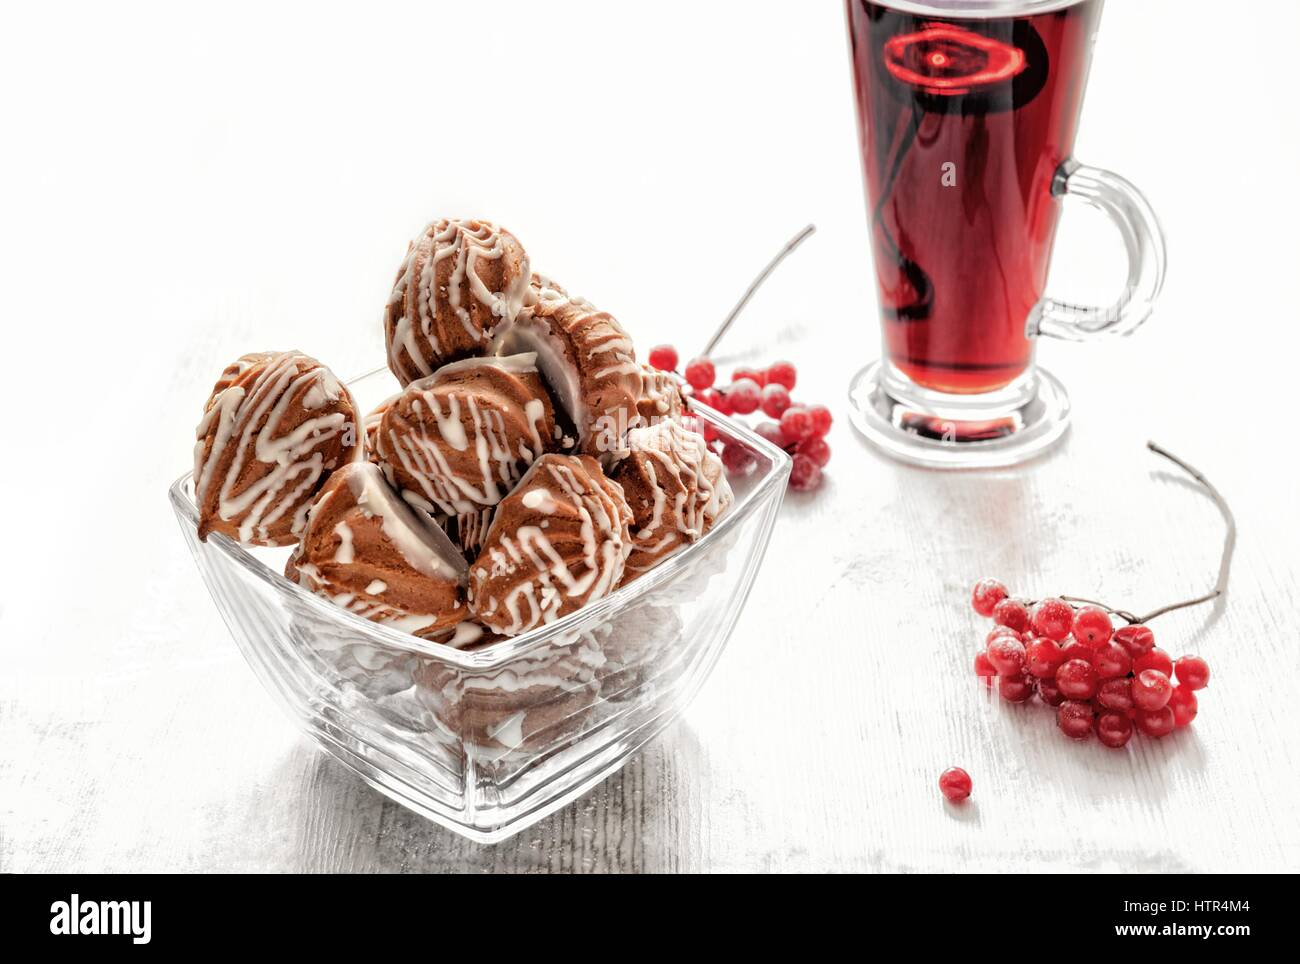 profiteroles, biscuits, stuffed with berry jam, round, with tea in clear glass cups - Stock Image